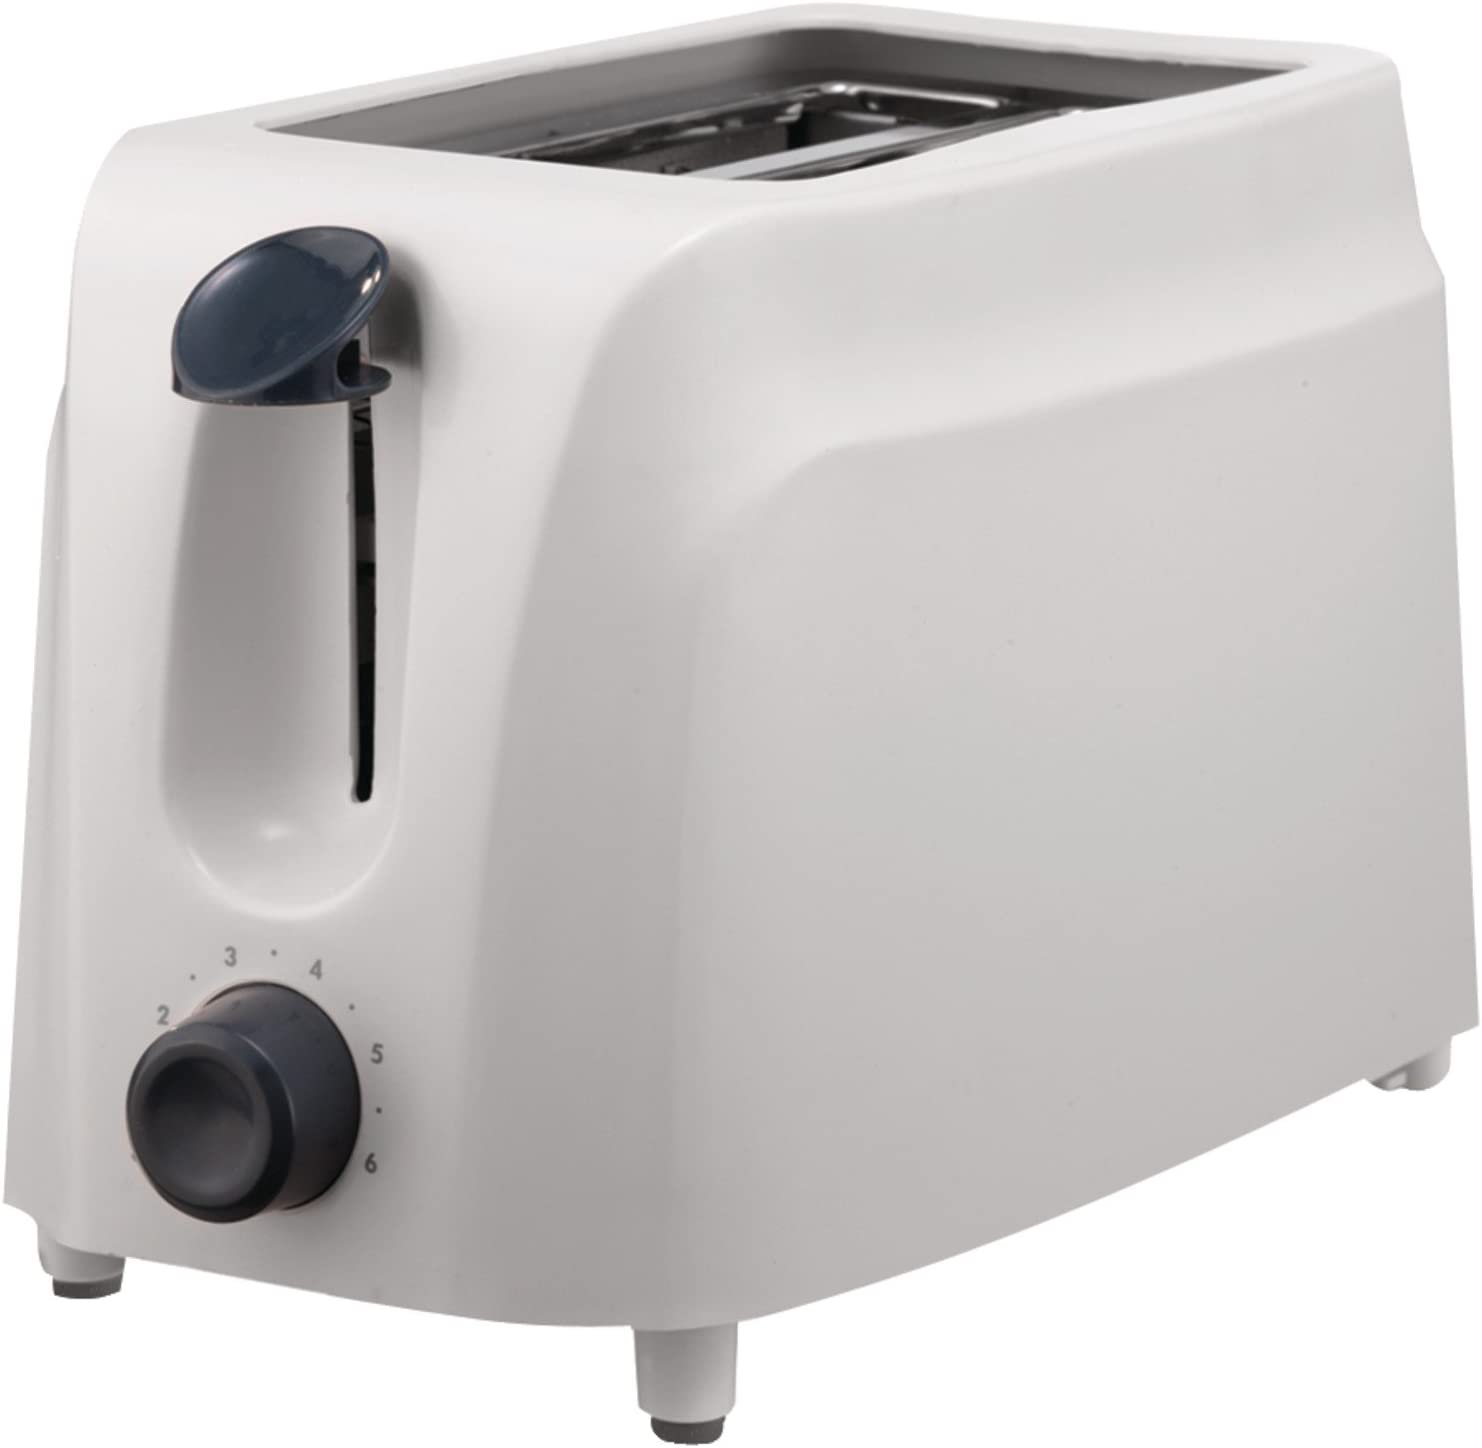 Brentwood TS-260W Toaster Cool Touch, 2-Slice, White